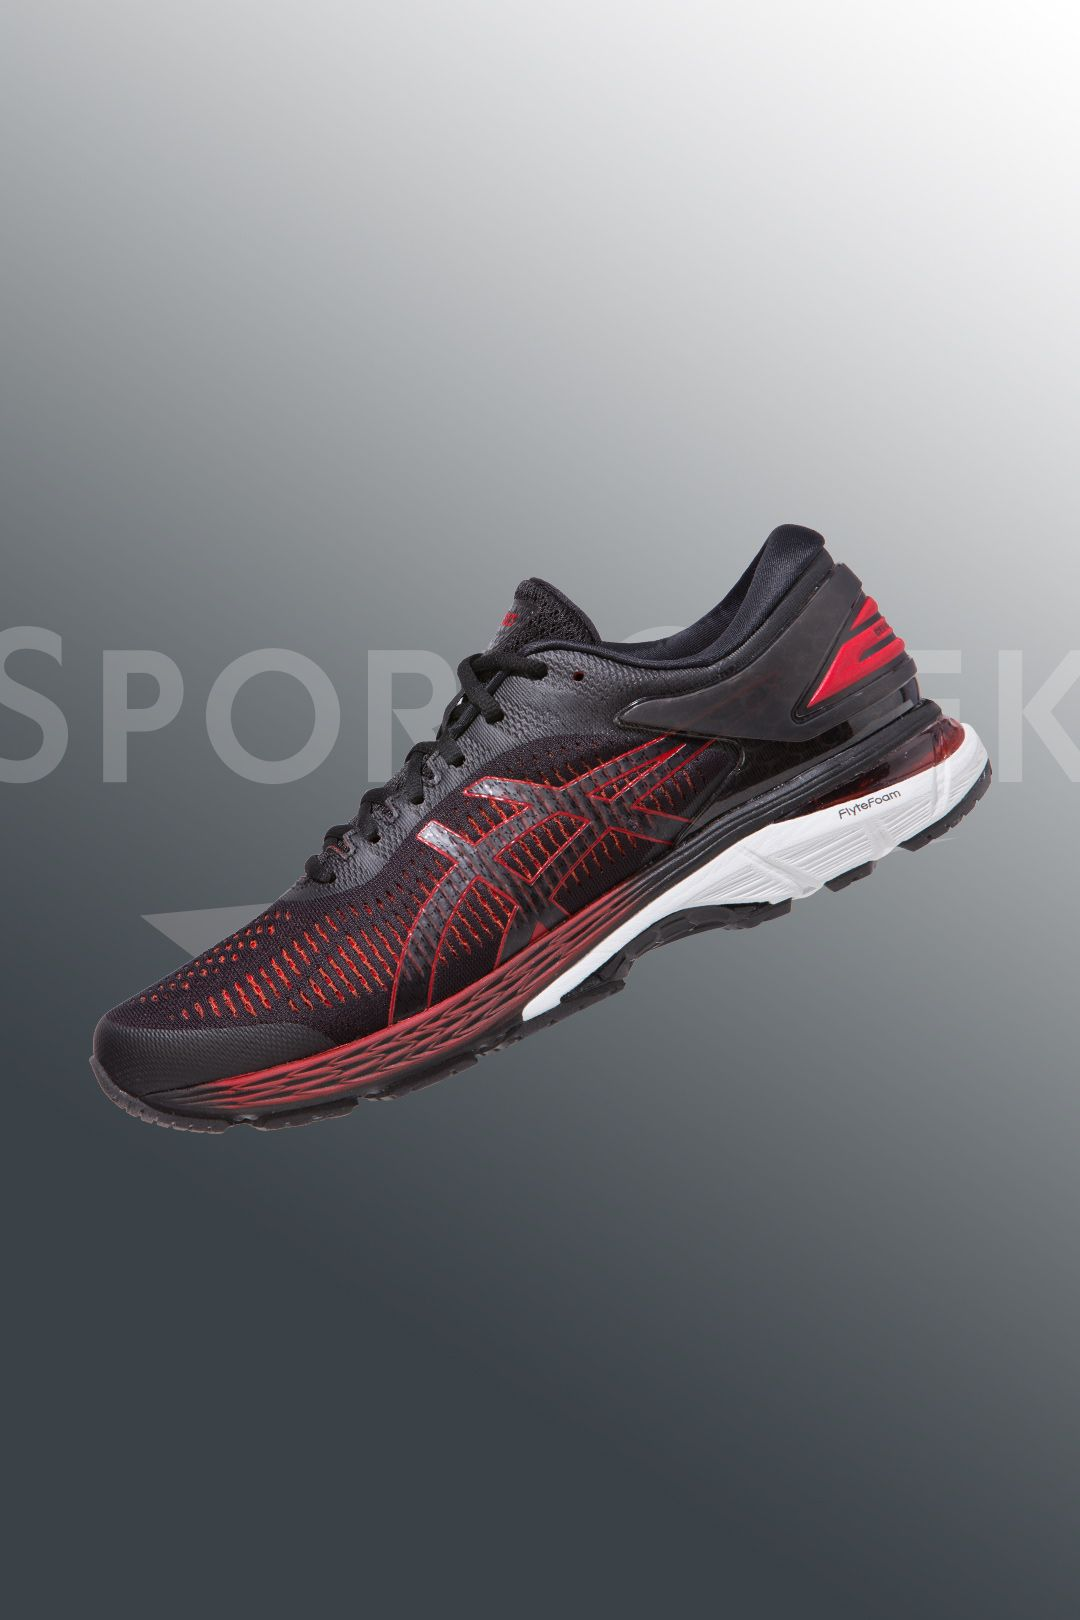 size 40 e673b 40a60 Made for performance, fit for comfort. The new GEL-KAYANO 25 collection gets